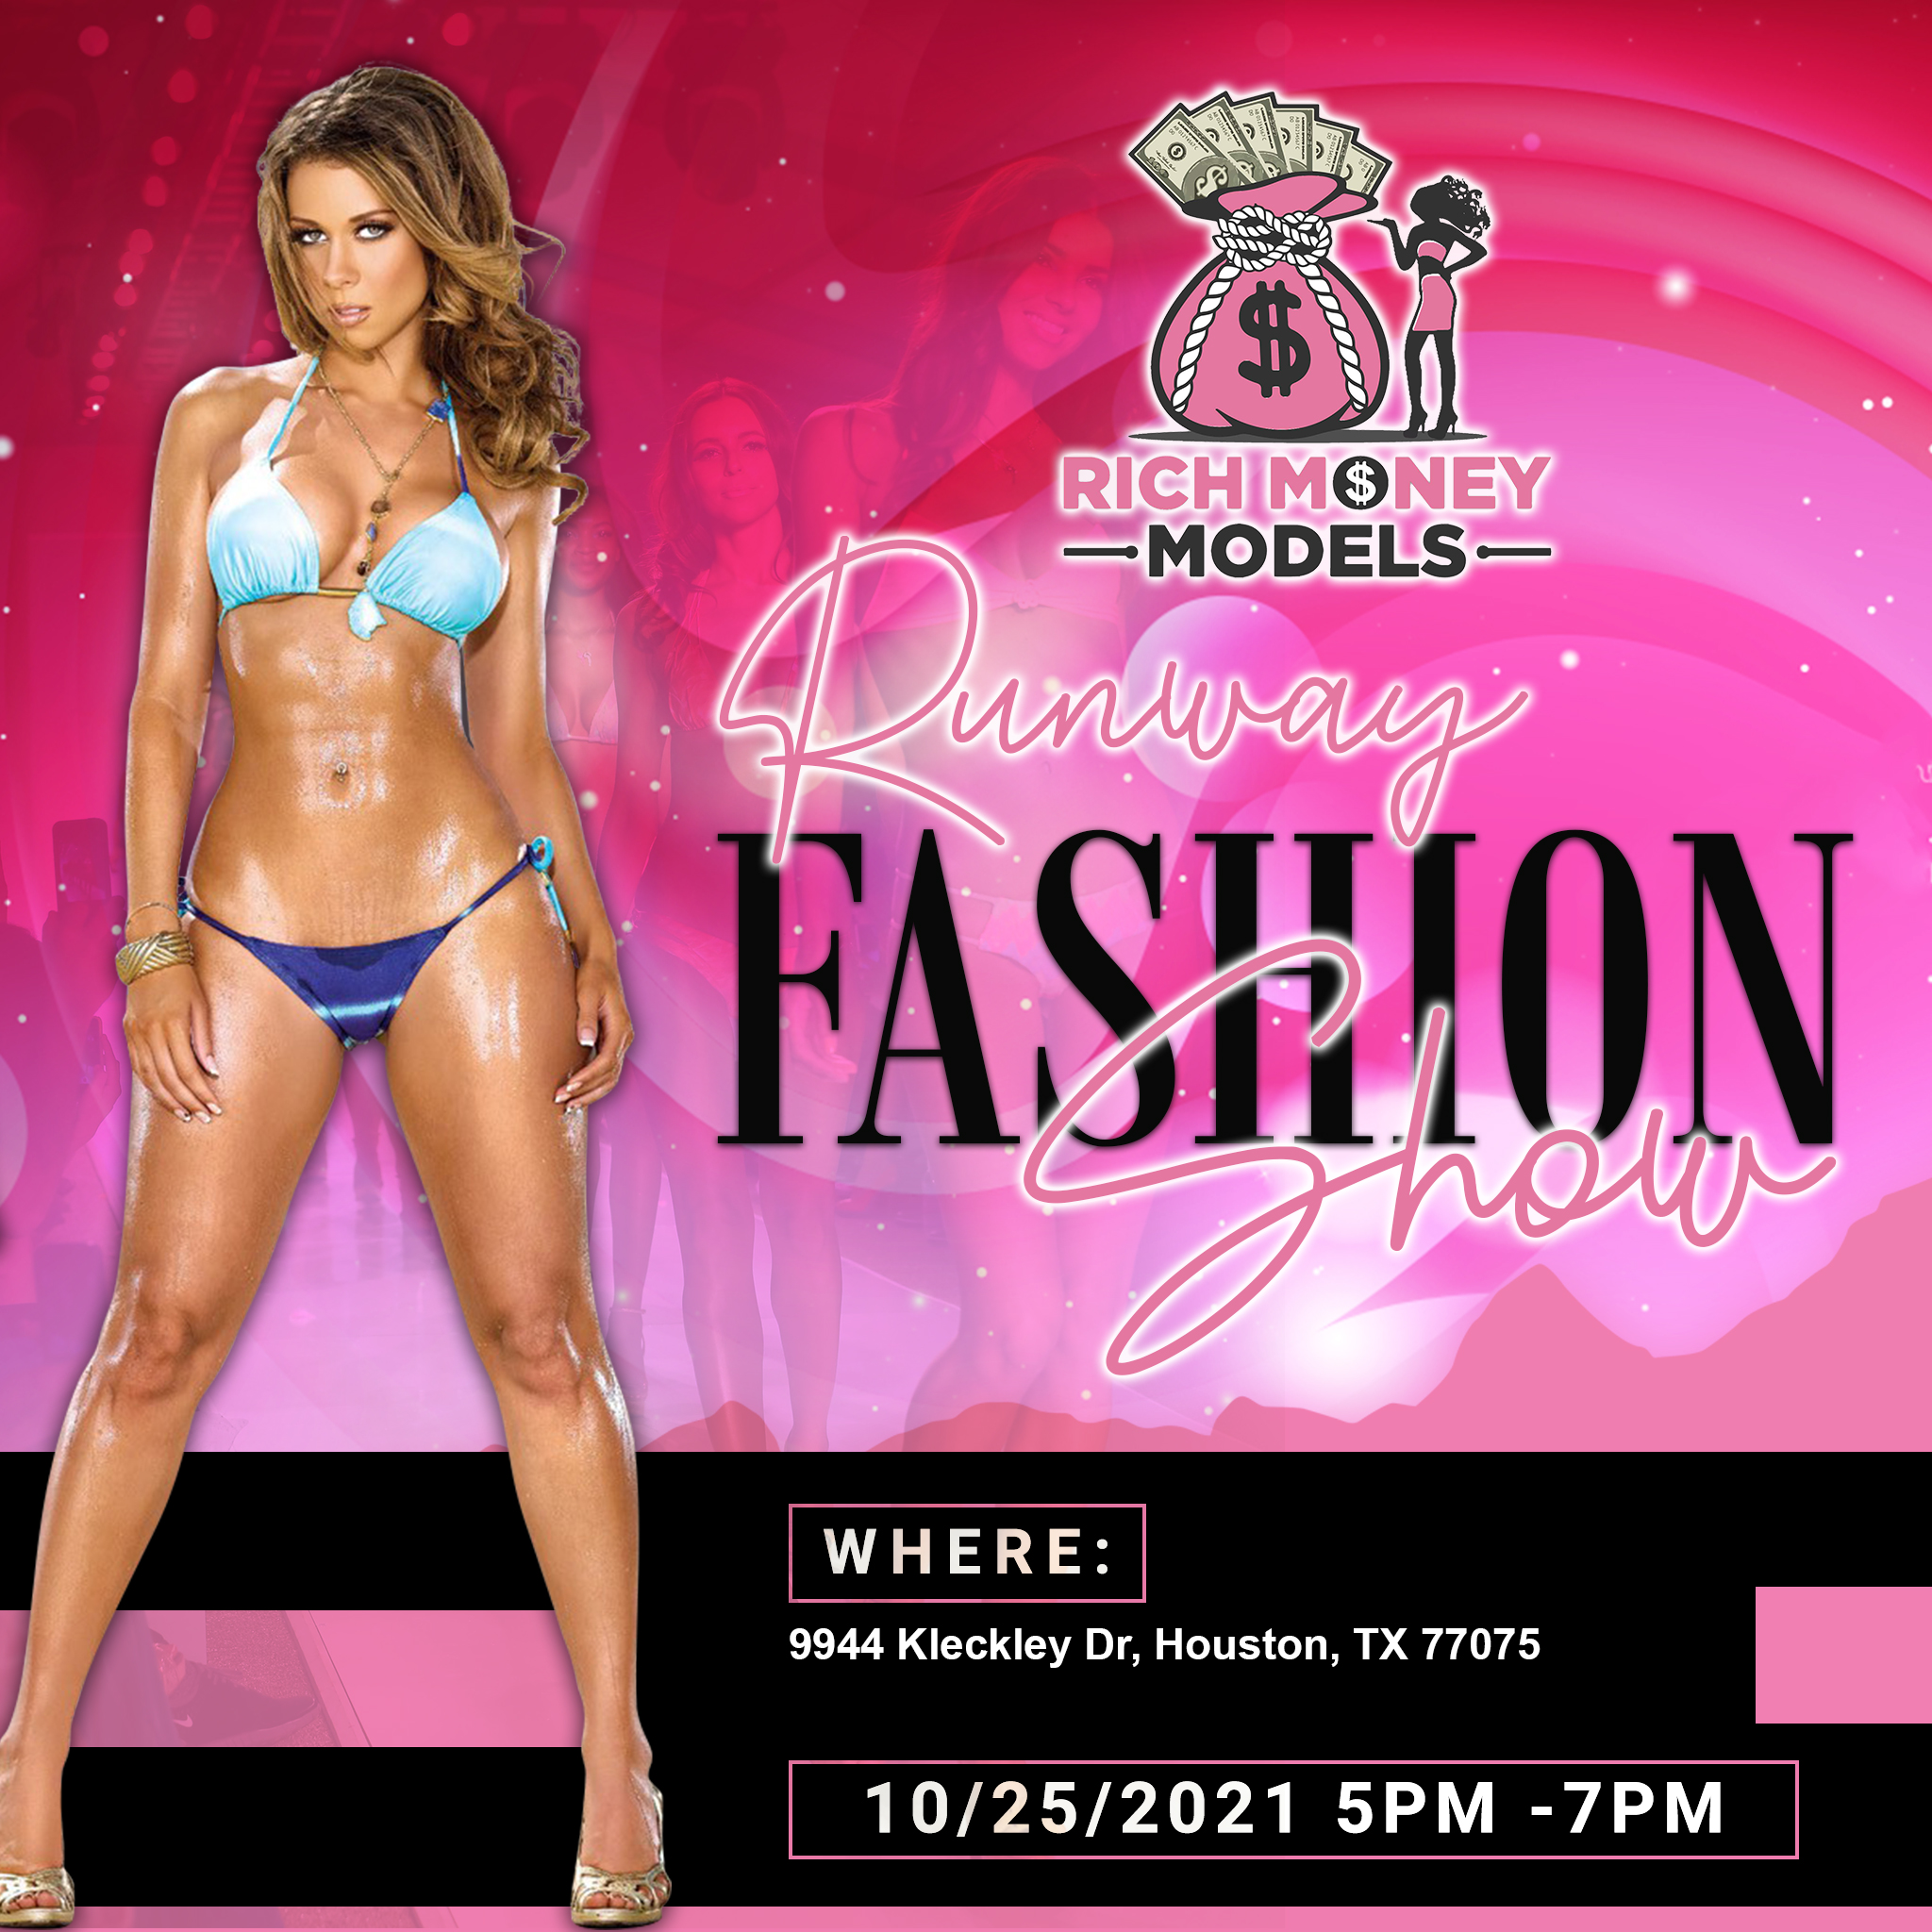 //richmoneymodels.com/wp-content/uploads/2020/11/Event-5.jpg